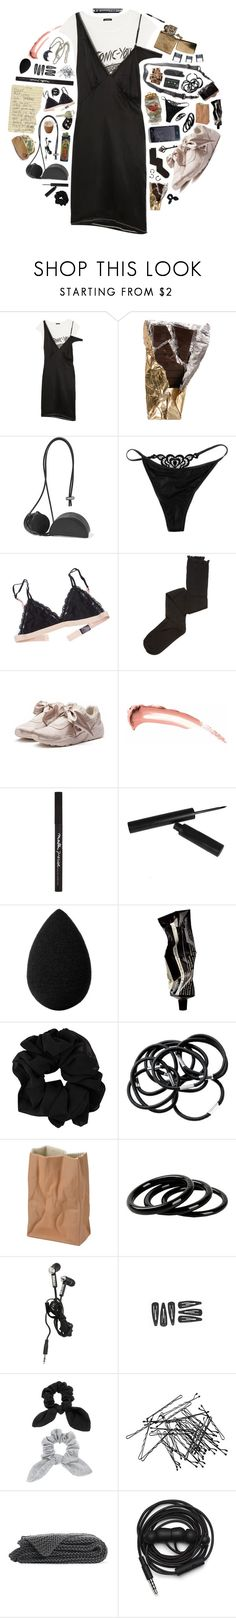 """""""carrousel"""" by cnellepoms ❤ liked on Polyvore featuring R13, DSPTCH, Building Block, The Little Bra Company, Intimately Free People, Puma, Maybelline, beautyblender, Aesop and H&M"""